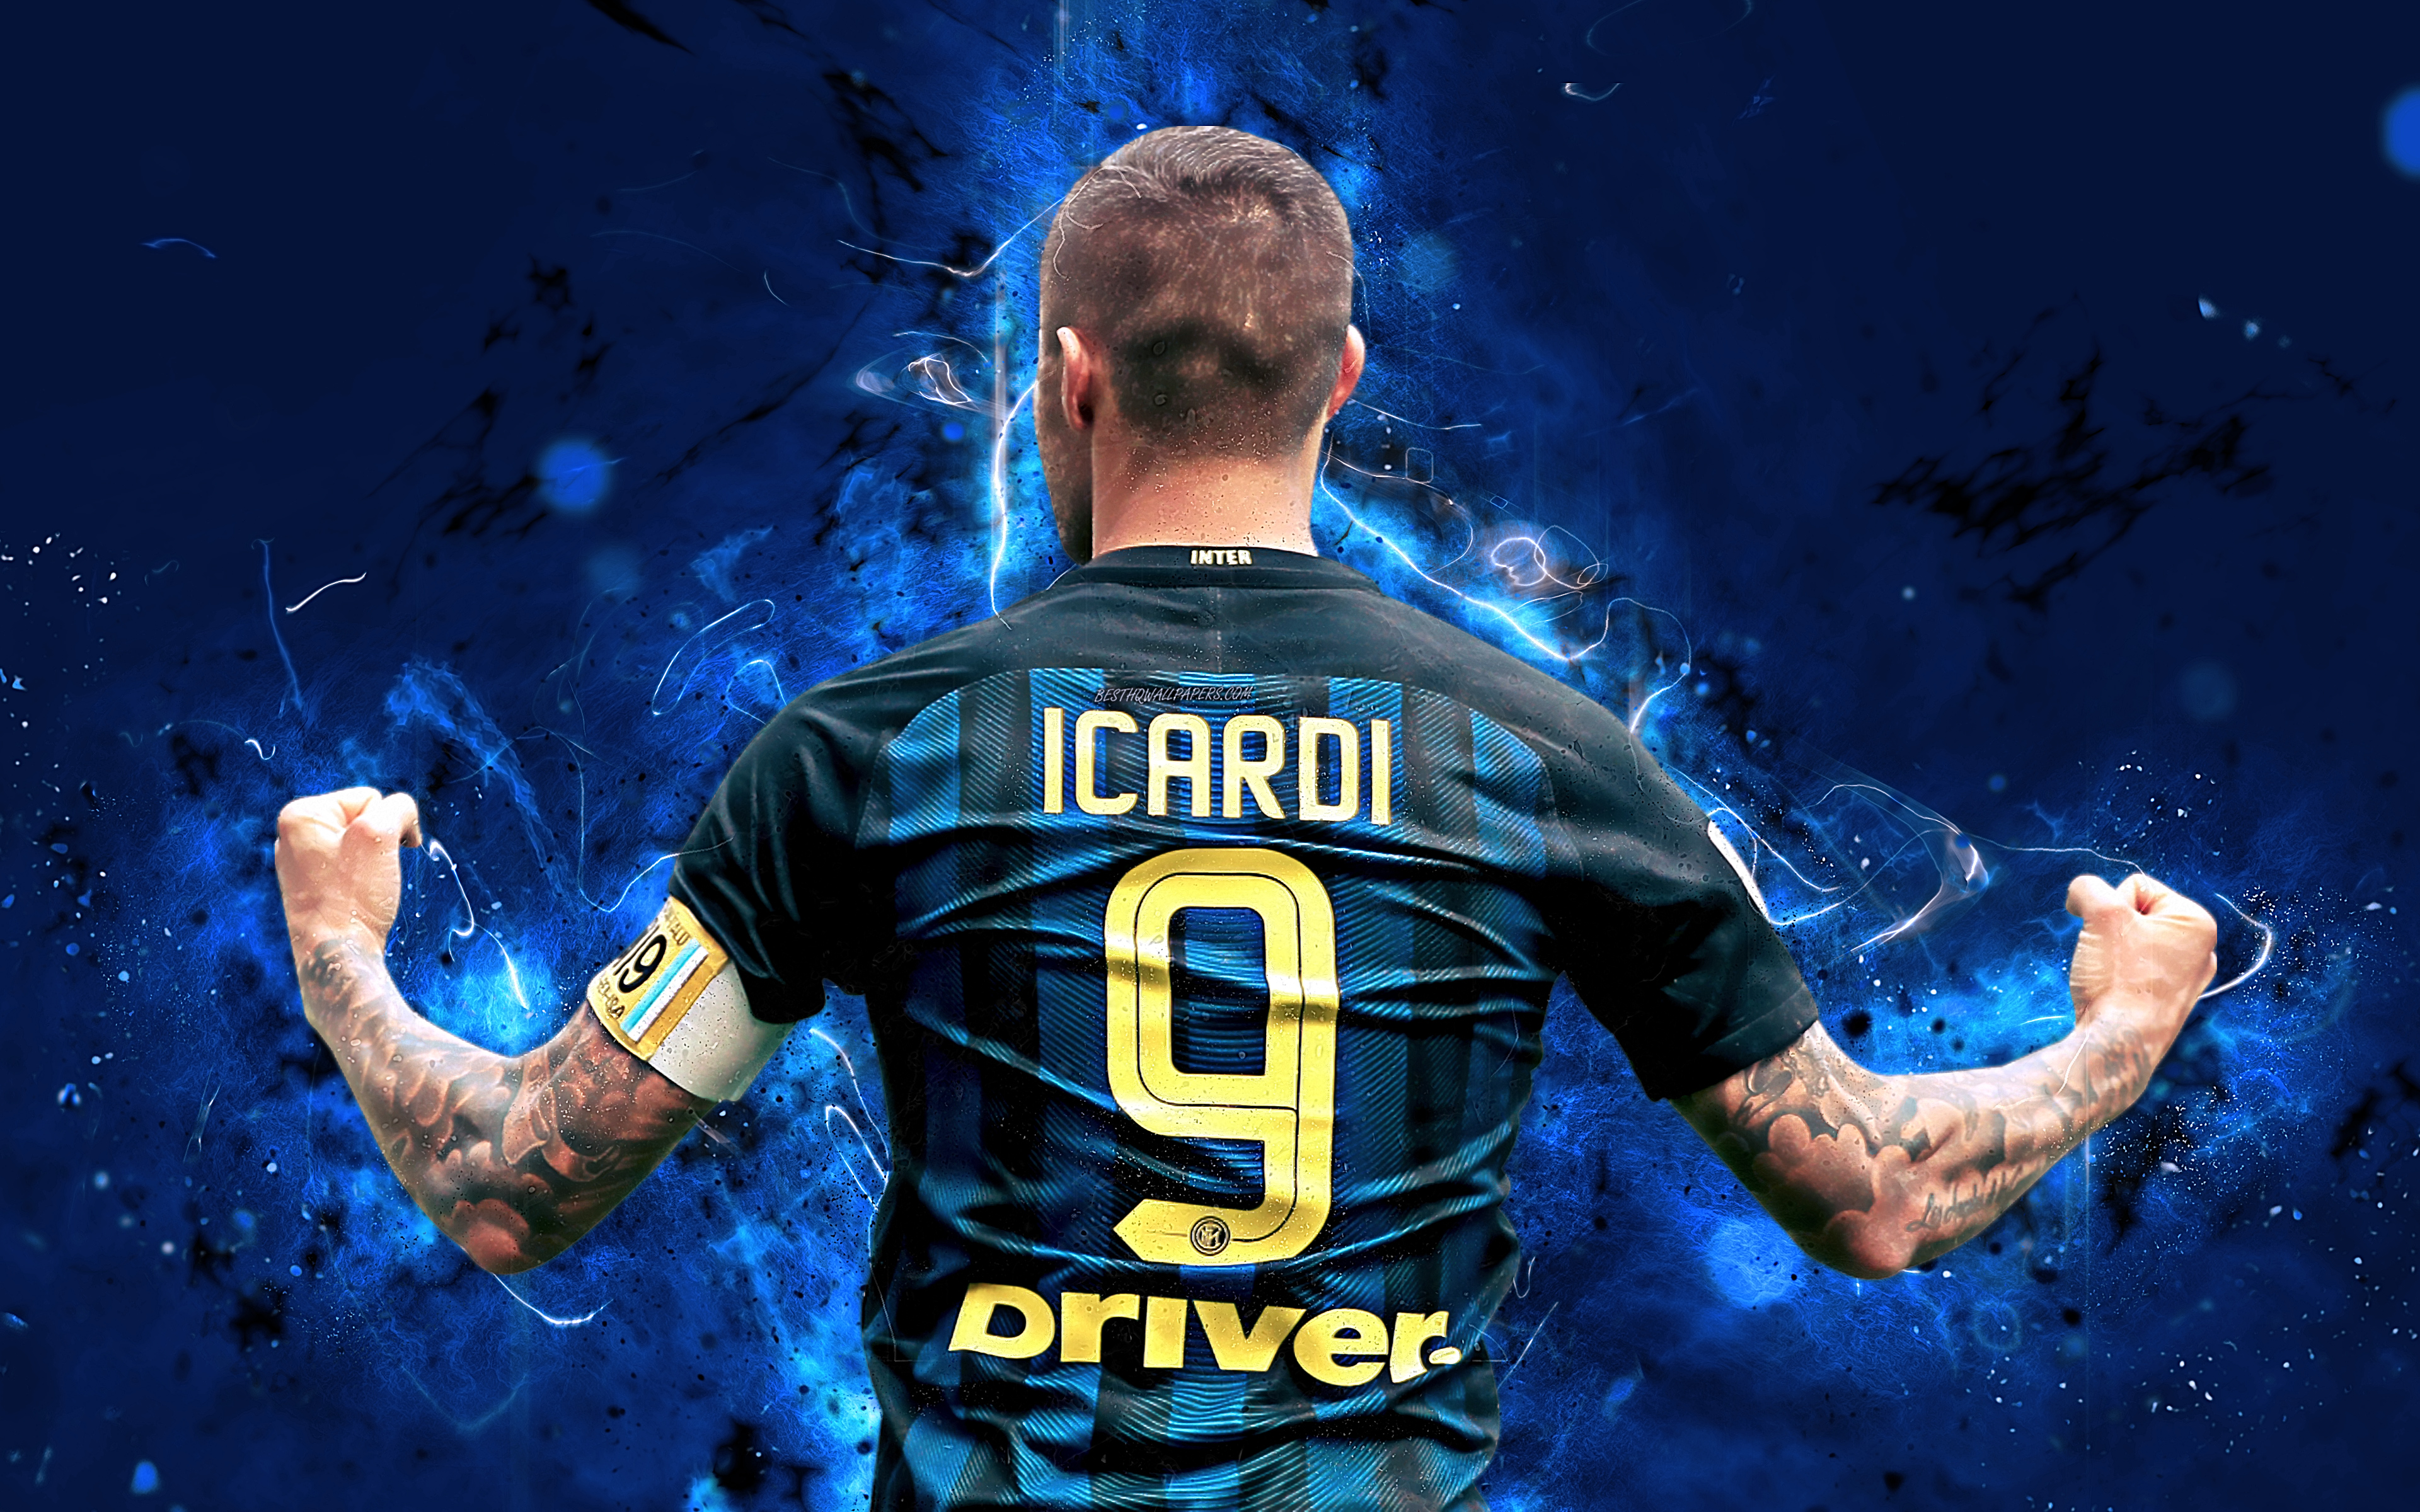 Mauro icardi inter 4k ultra hd wallpaper sfondi for Sfondi inter hd